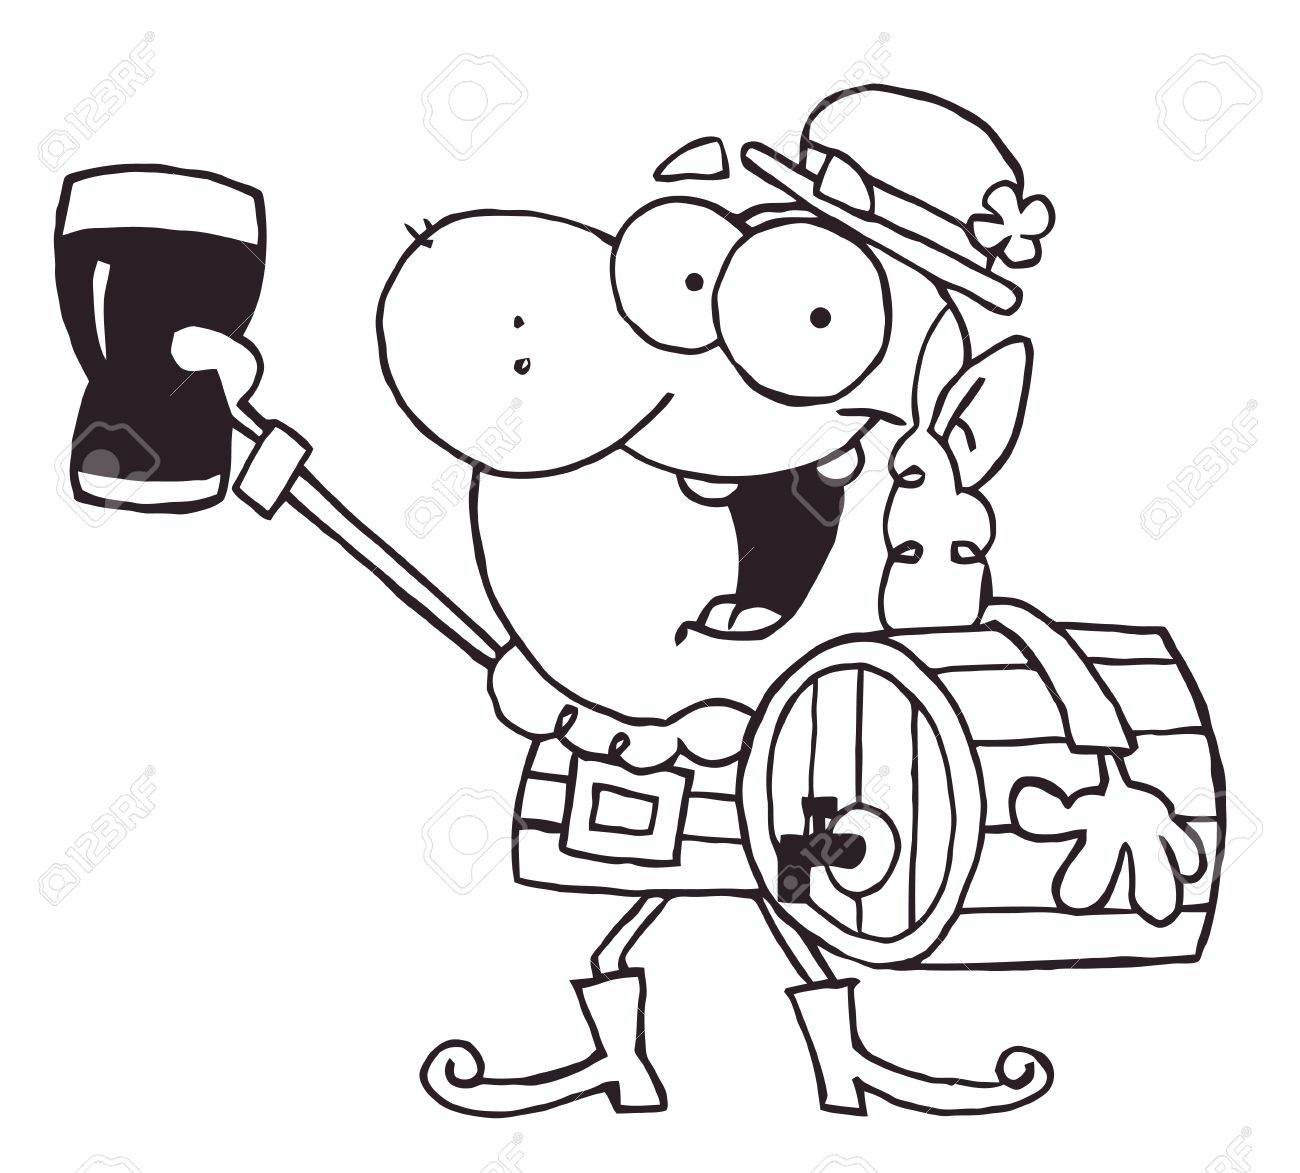 1300x1173 Outlined Leprechaun Carrying A Beer Keg And Holding Up A Glass